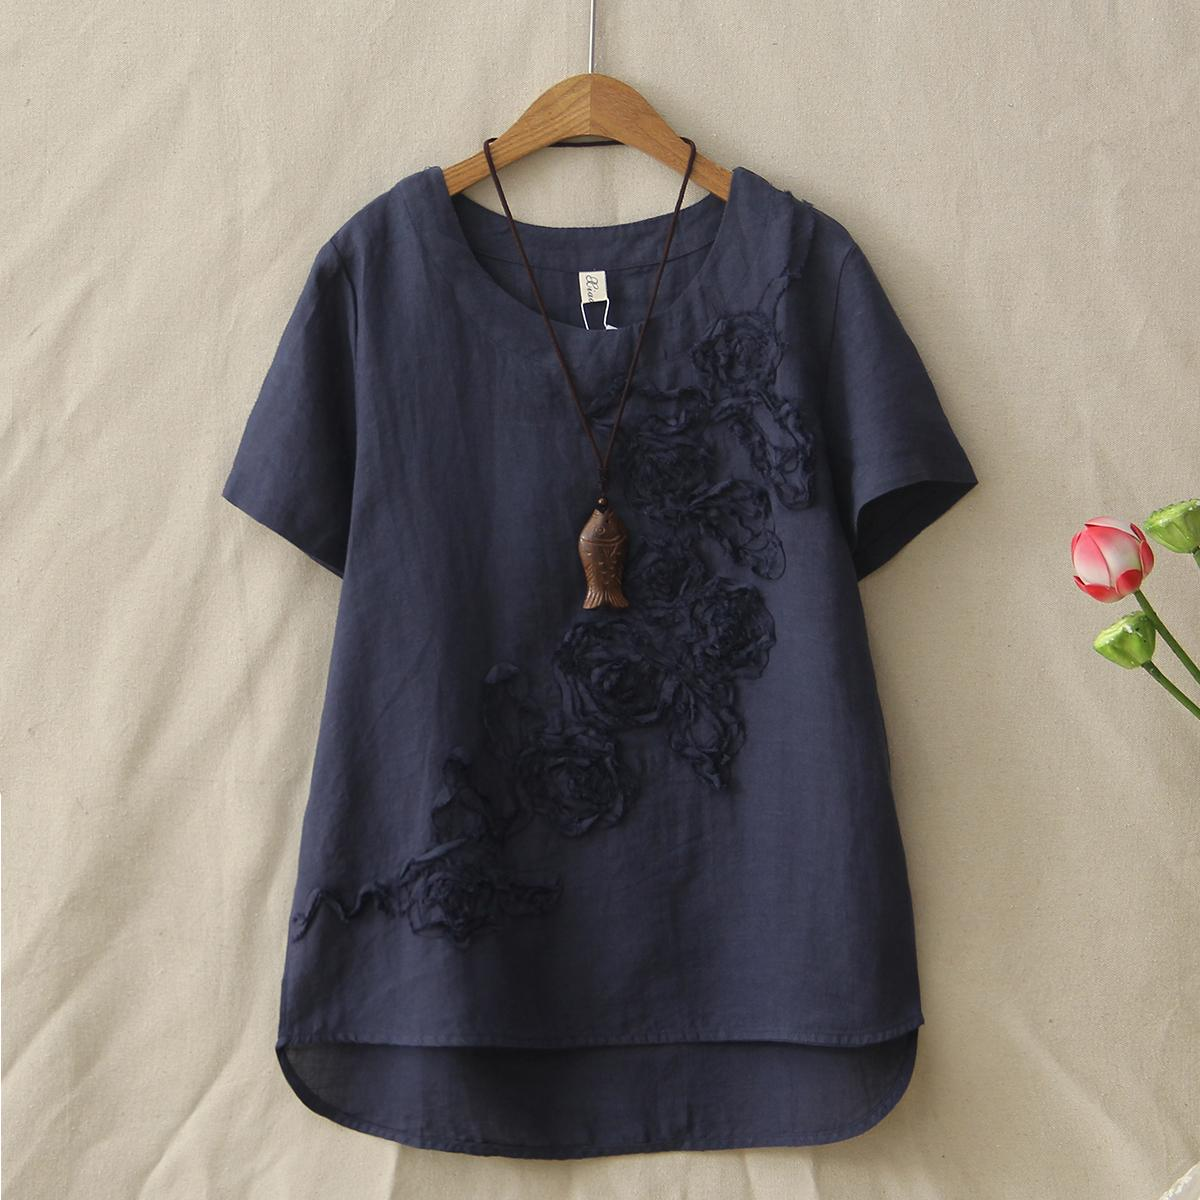 c9b1cbd2 Summer New Cotton And Linen T Shirt Female Short Sleeved Fashion Flower  Embroidery Tops Womens Tee Shirts Irregular Clothing Online T Shirt Buy  Joke T Shirt ...